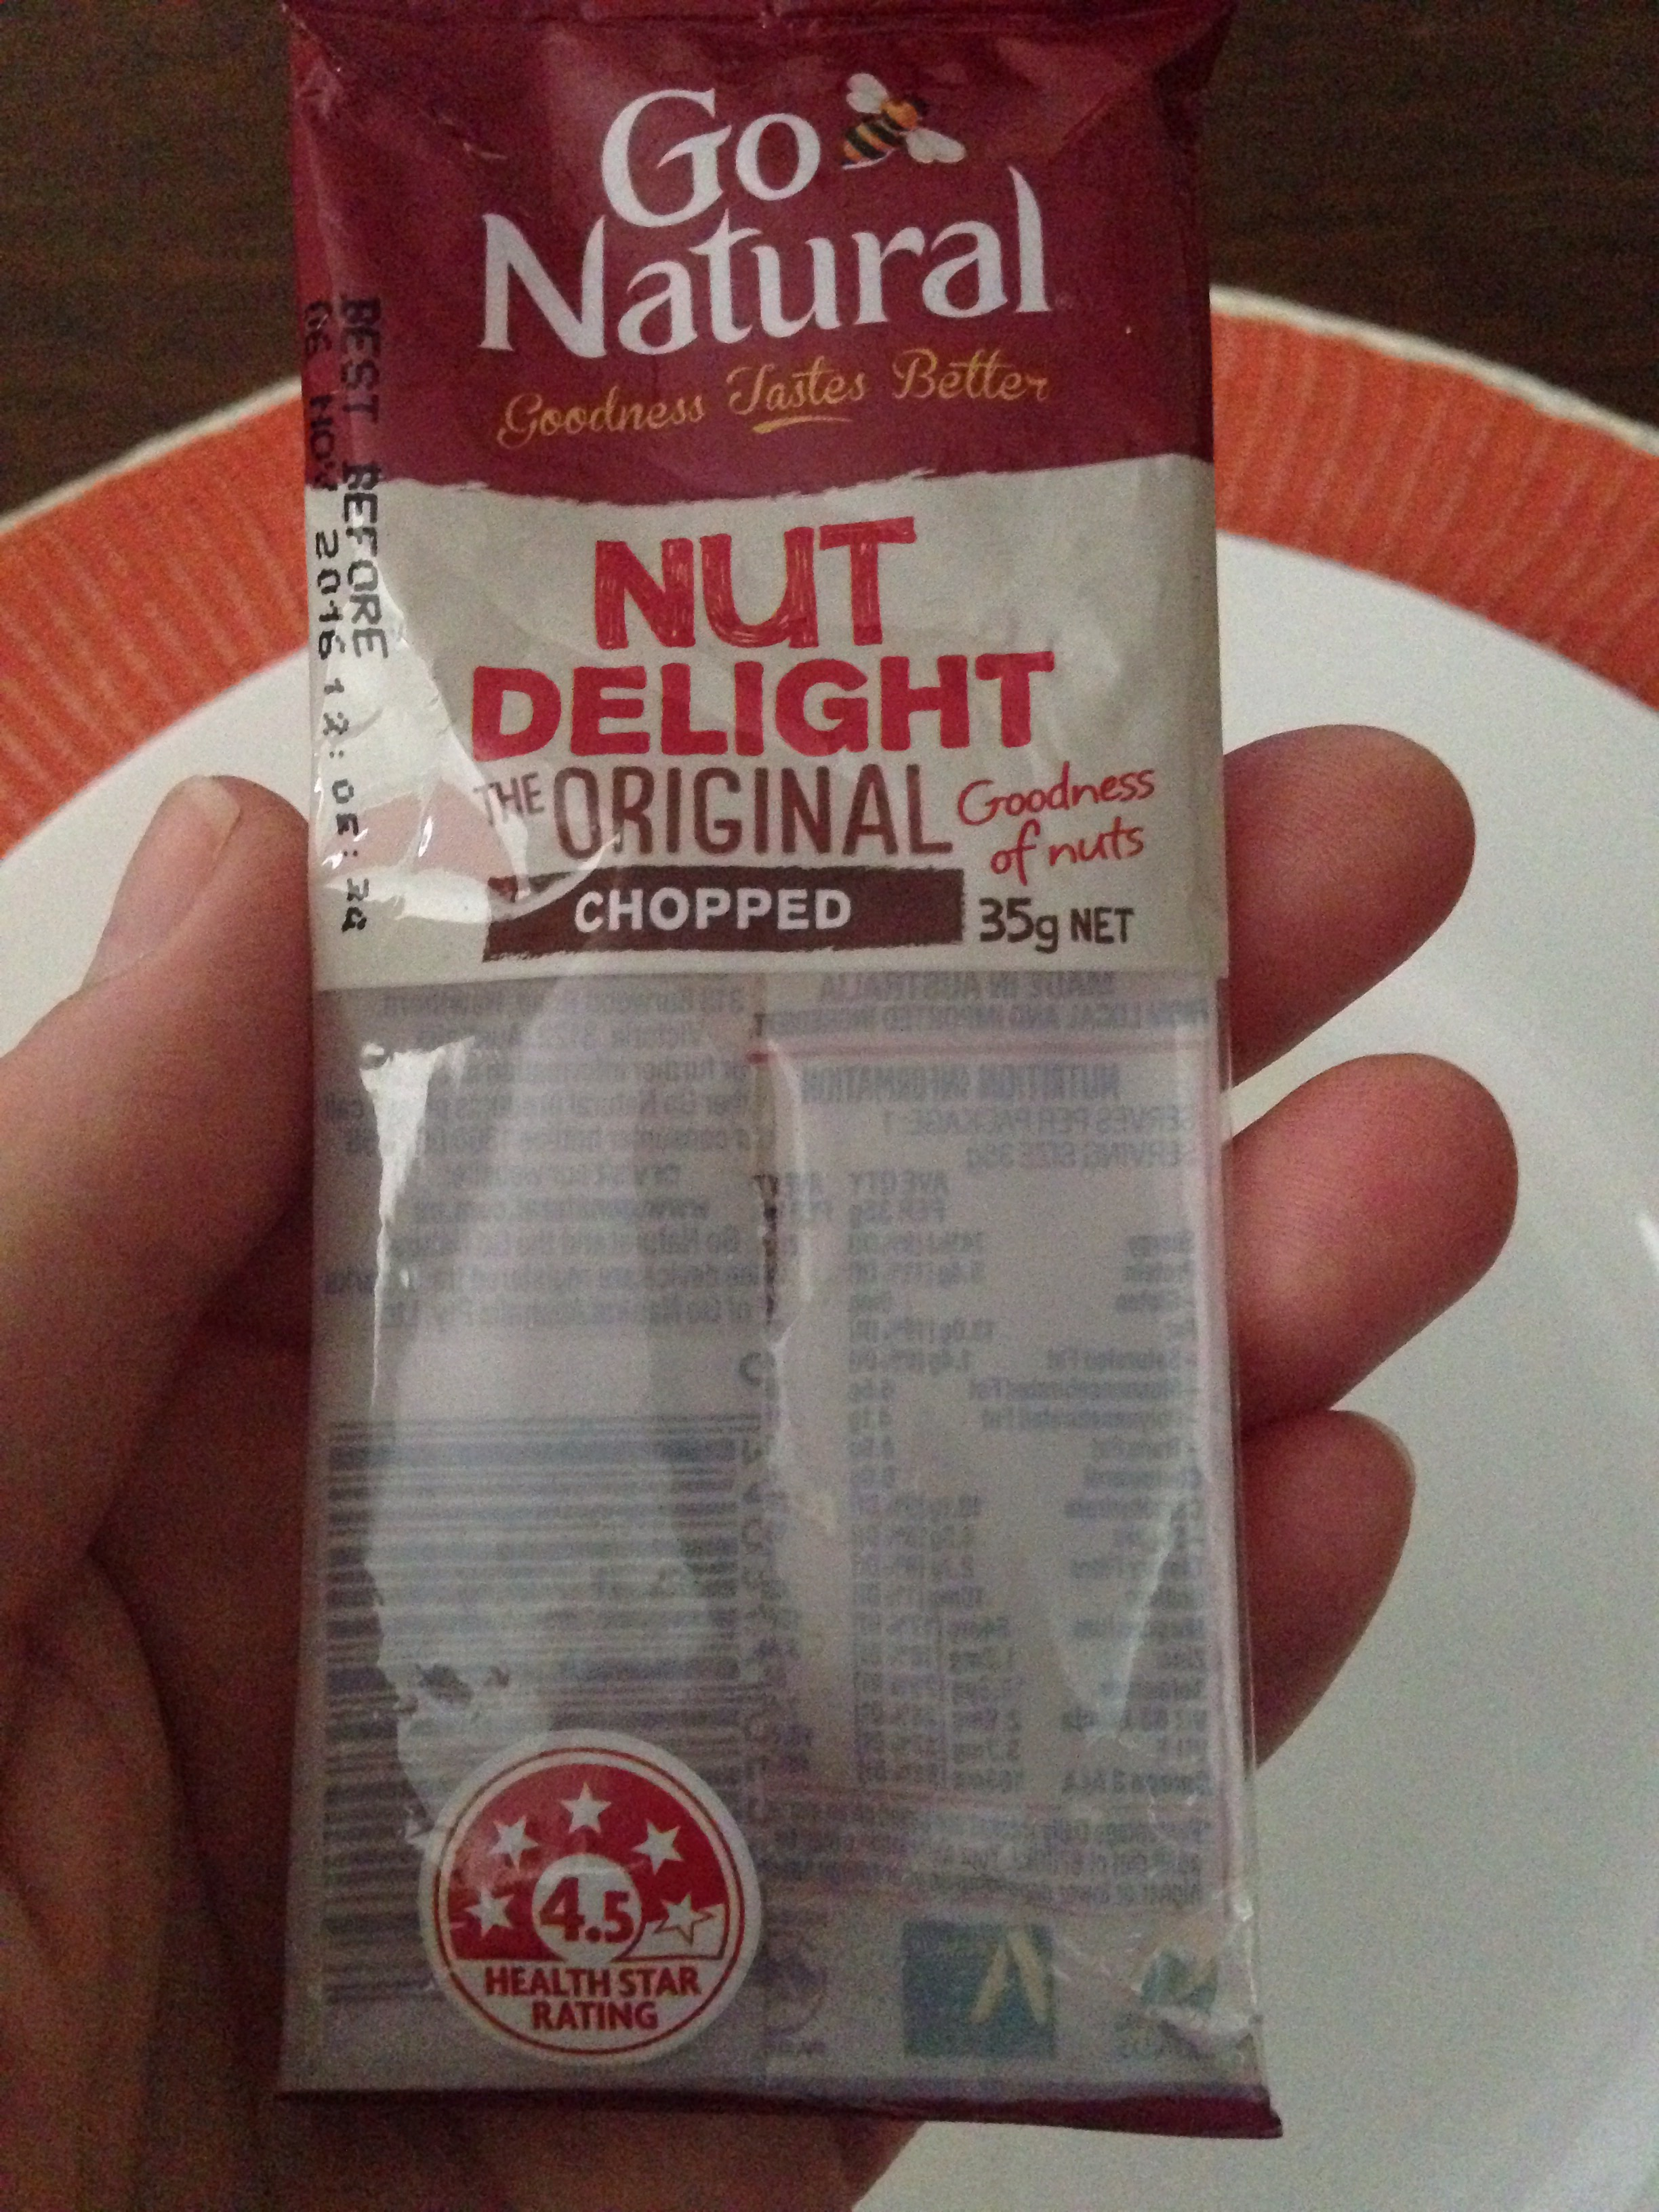 A close up of the packet of Go Natural Nut Delight bar.